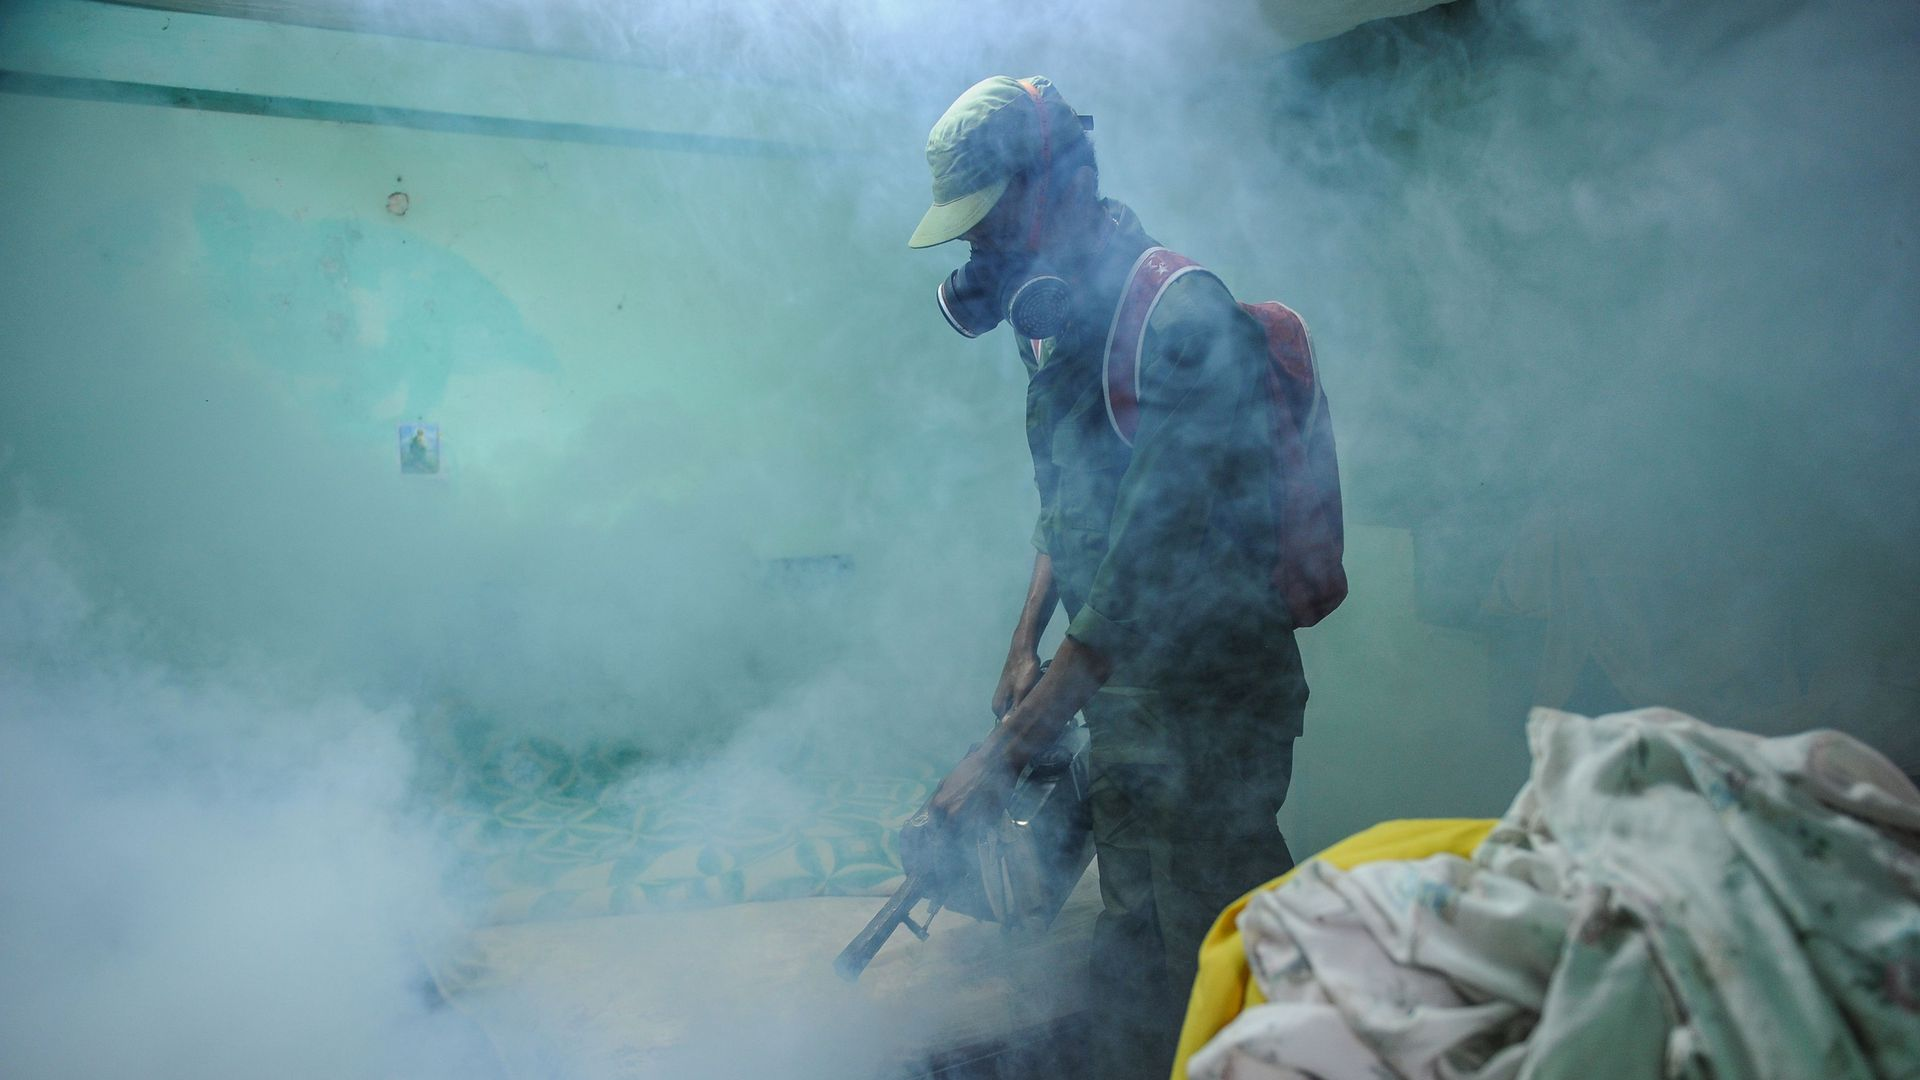 Member of the Cuban army fumigates against mosquitoes following Zika outbreak